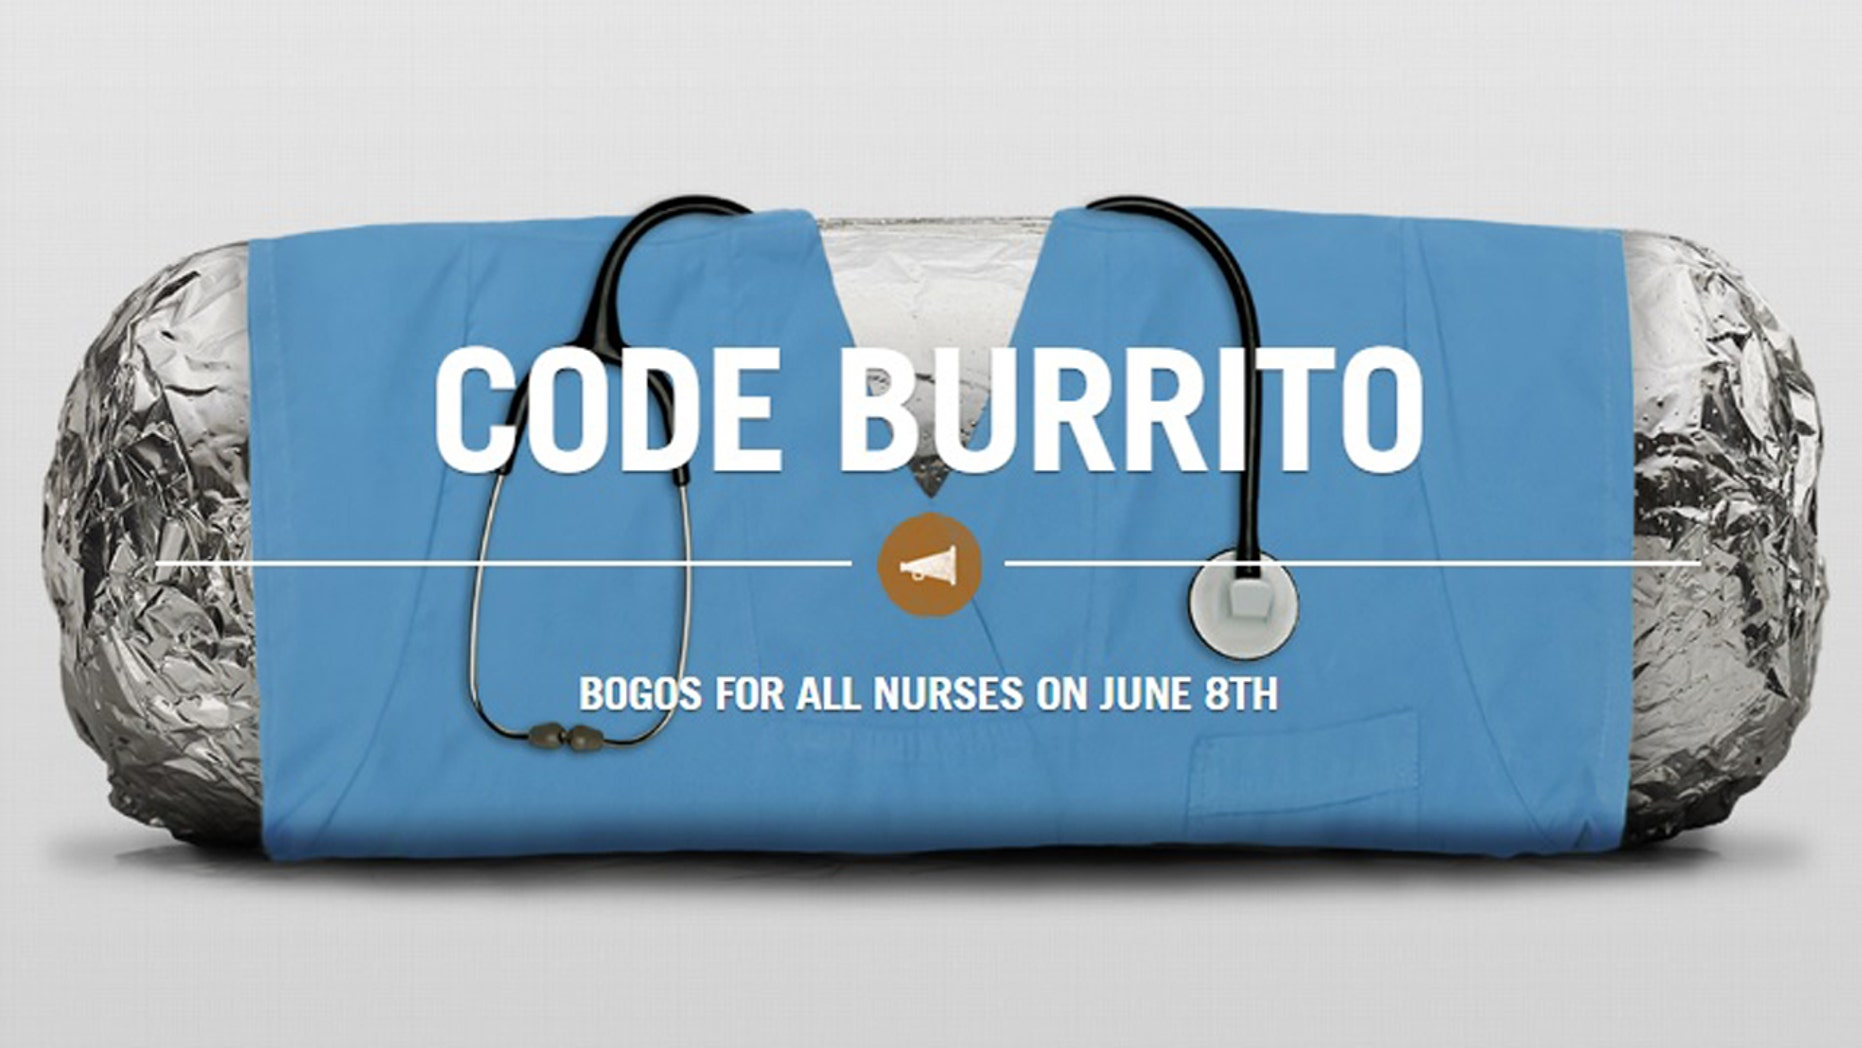 The Mexican-American grill is offering free food to nurses.